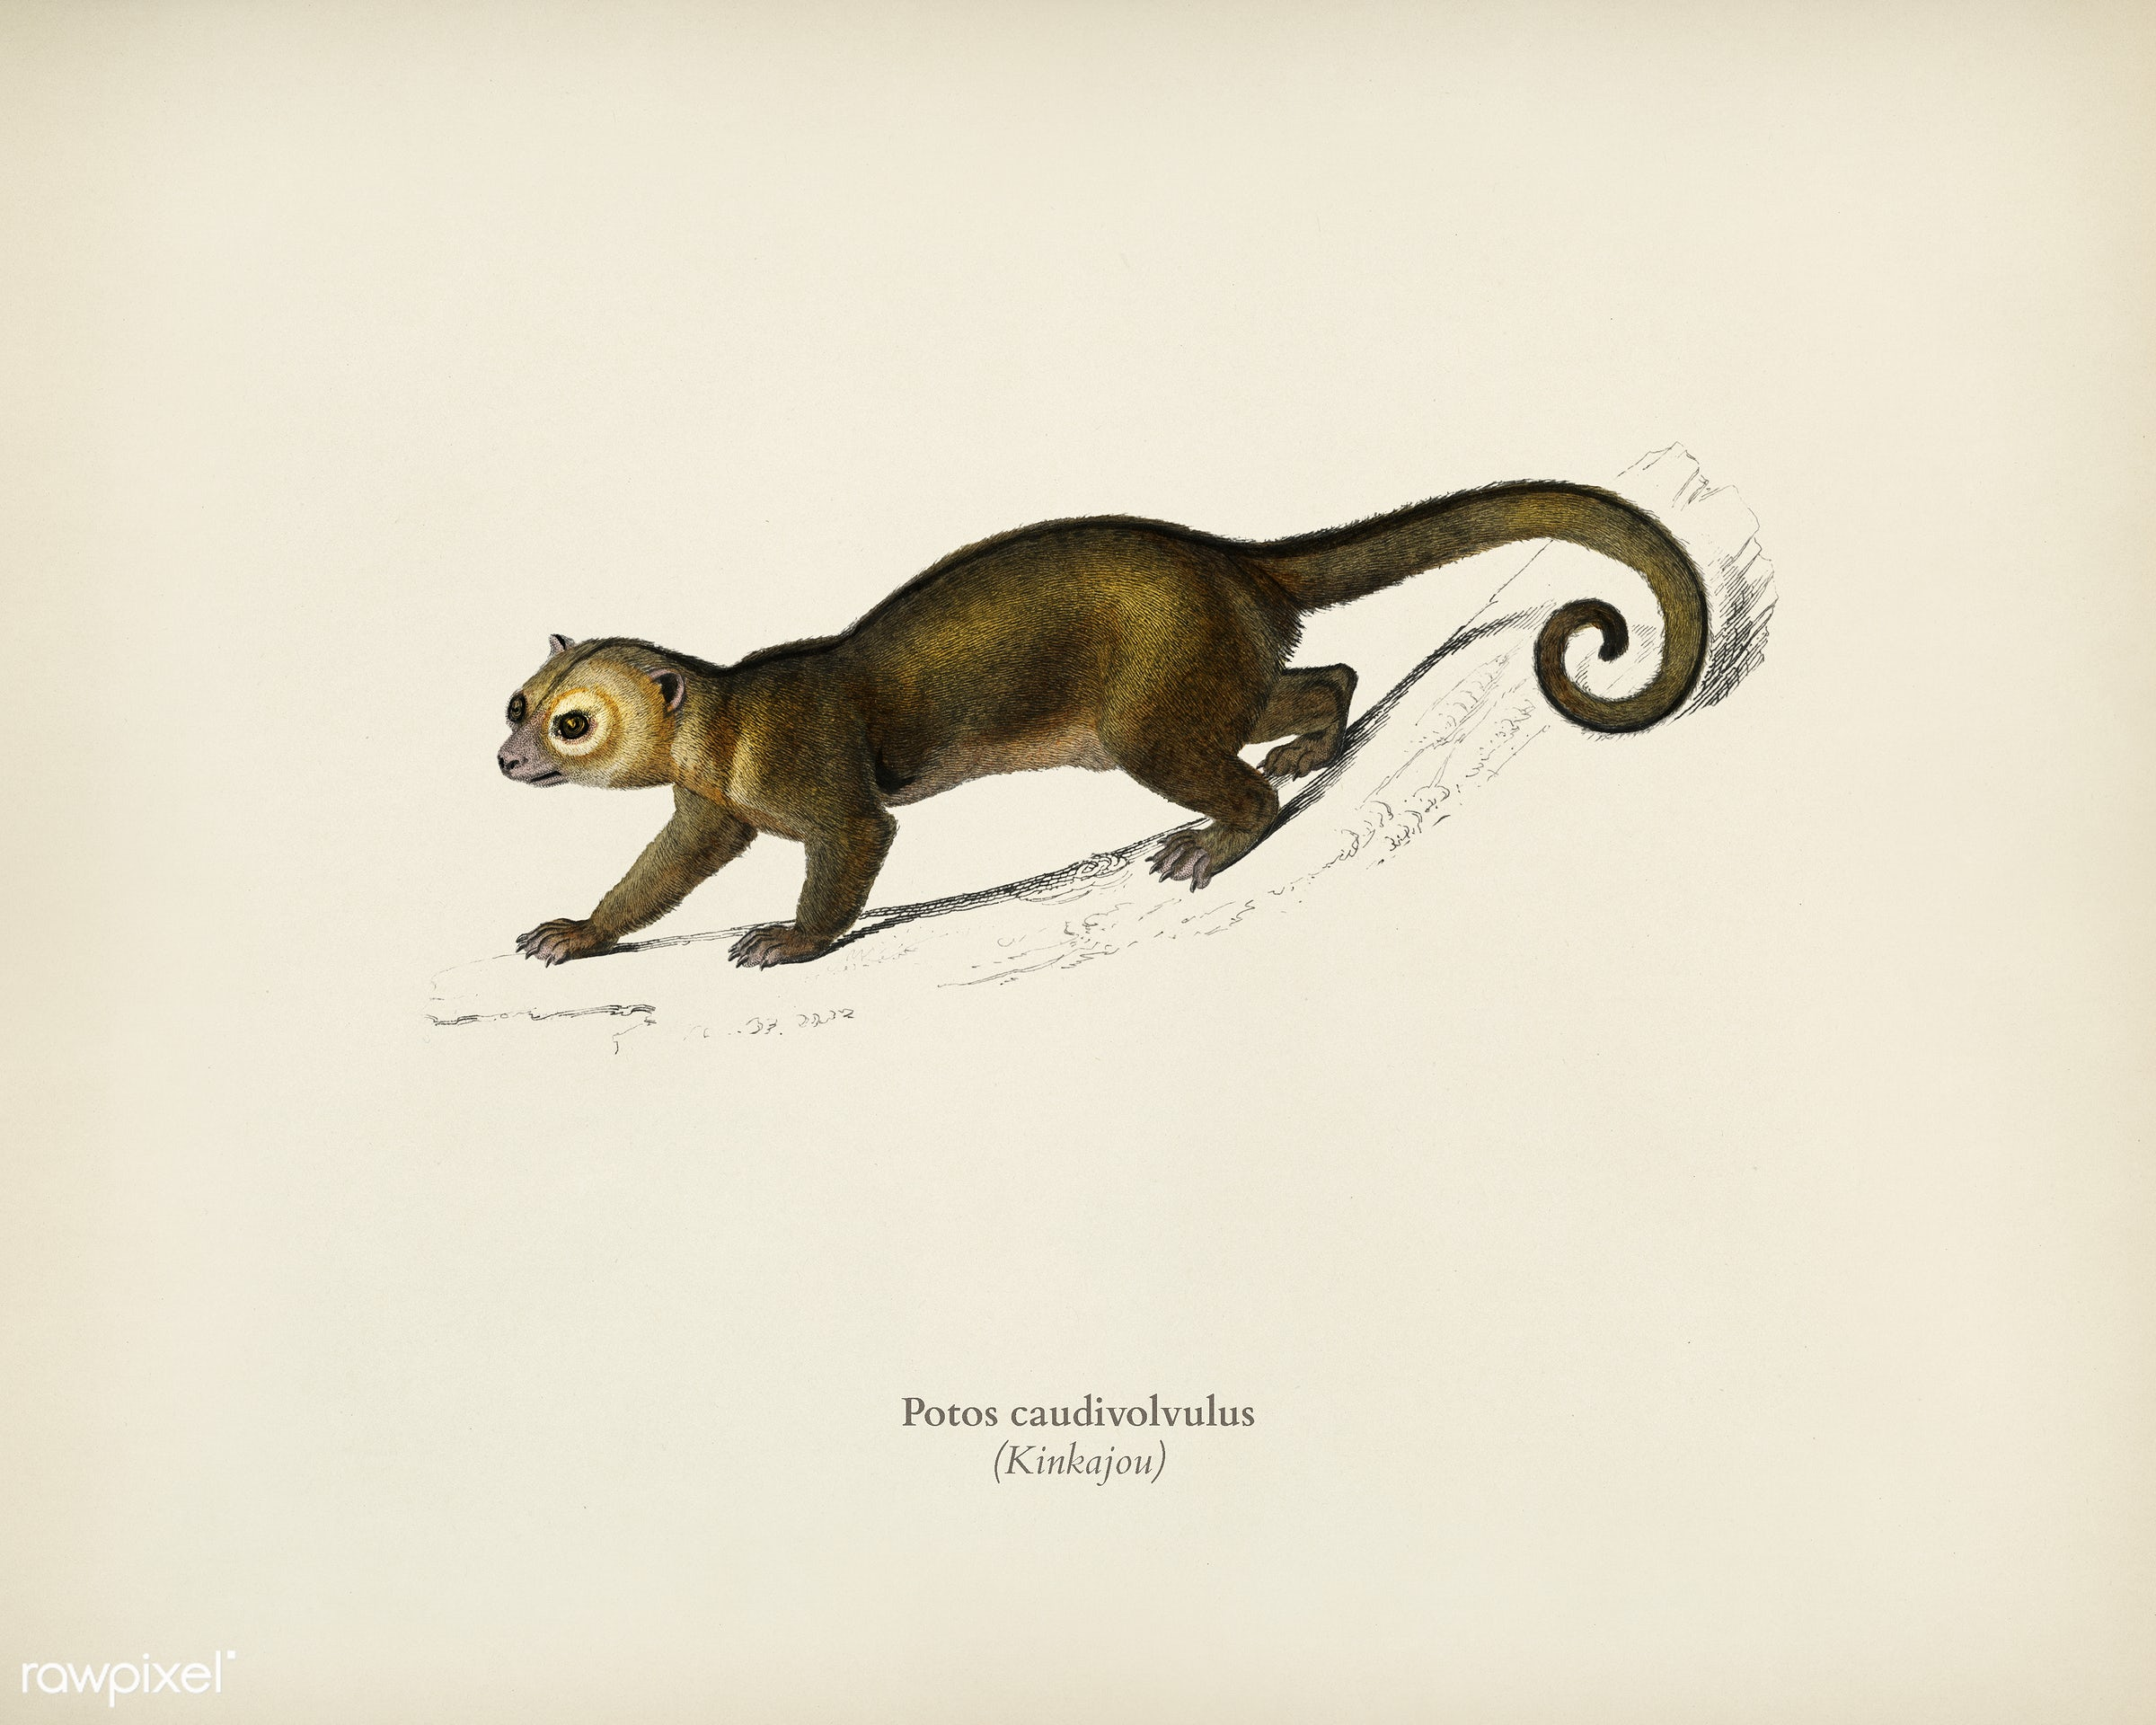 Kinkajou (Potos caudivolvulus) illustrated by Charles Dessalines D' Orbigny (1806-1876). Digitally enhanced from our own...